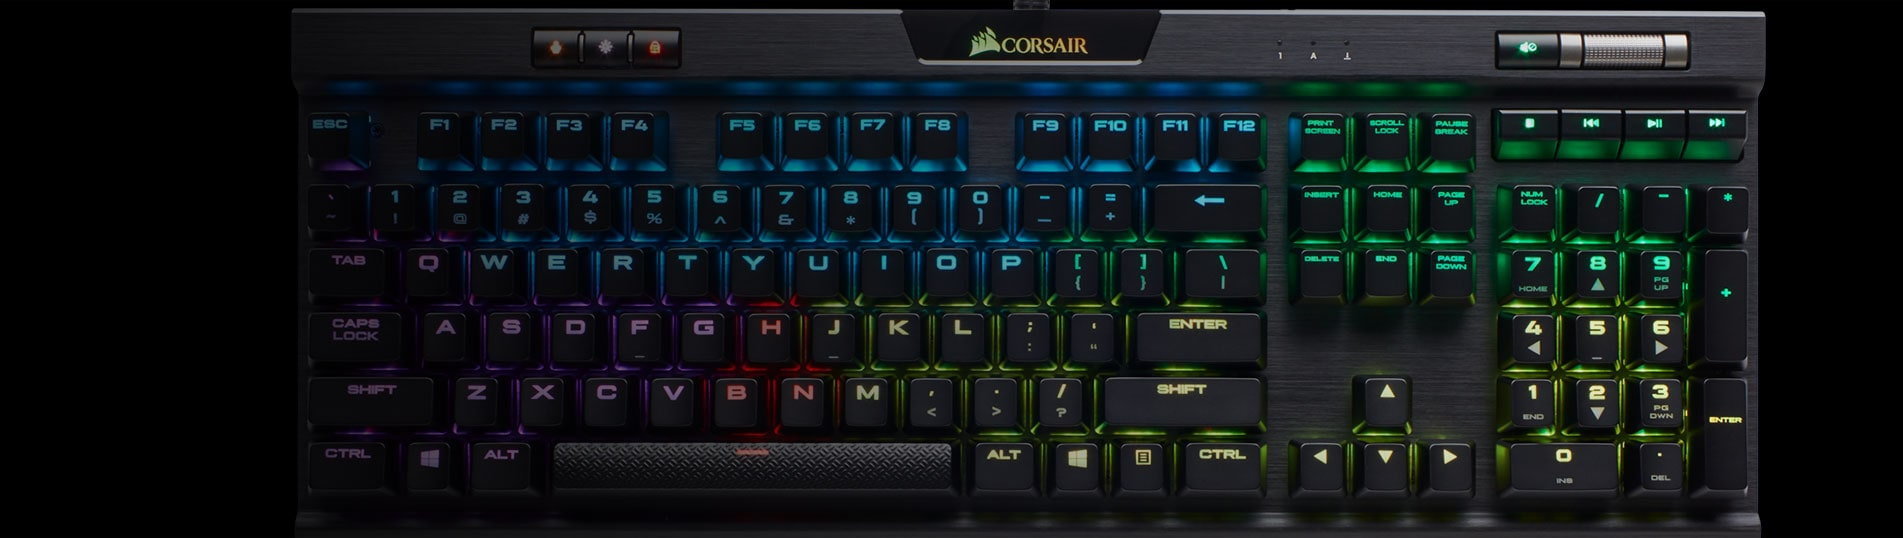 ec5a60ebbd7 Gaming Keyboards | RGB Gaming Keyboards | Wireless Gaming Keyboards ...